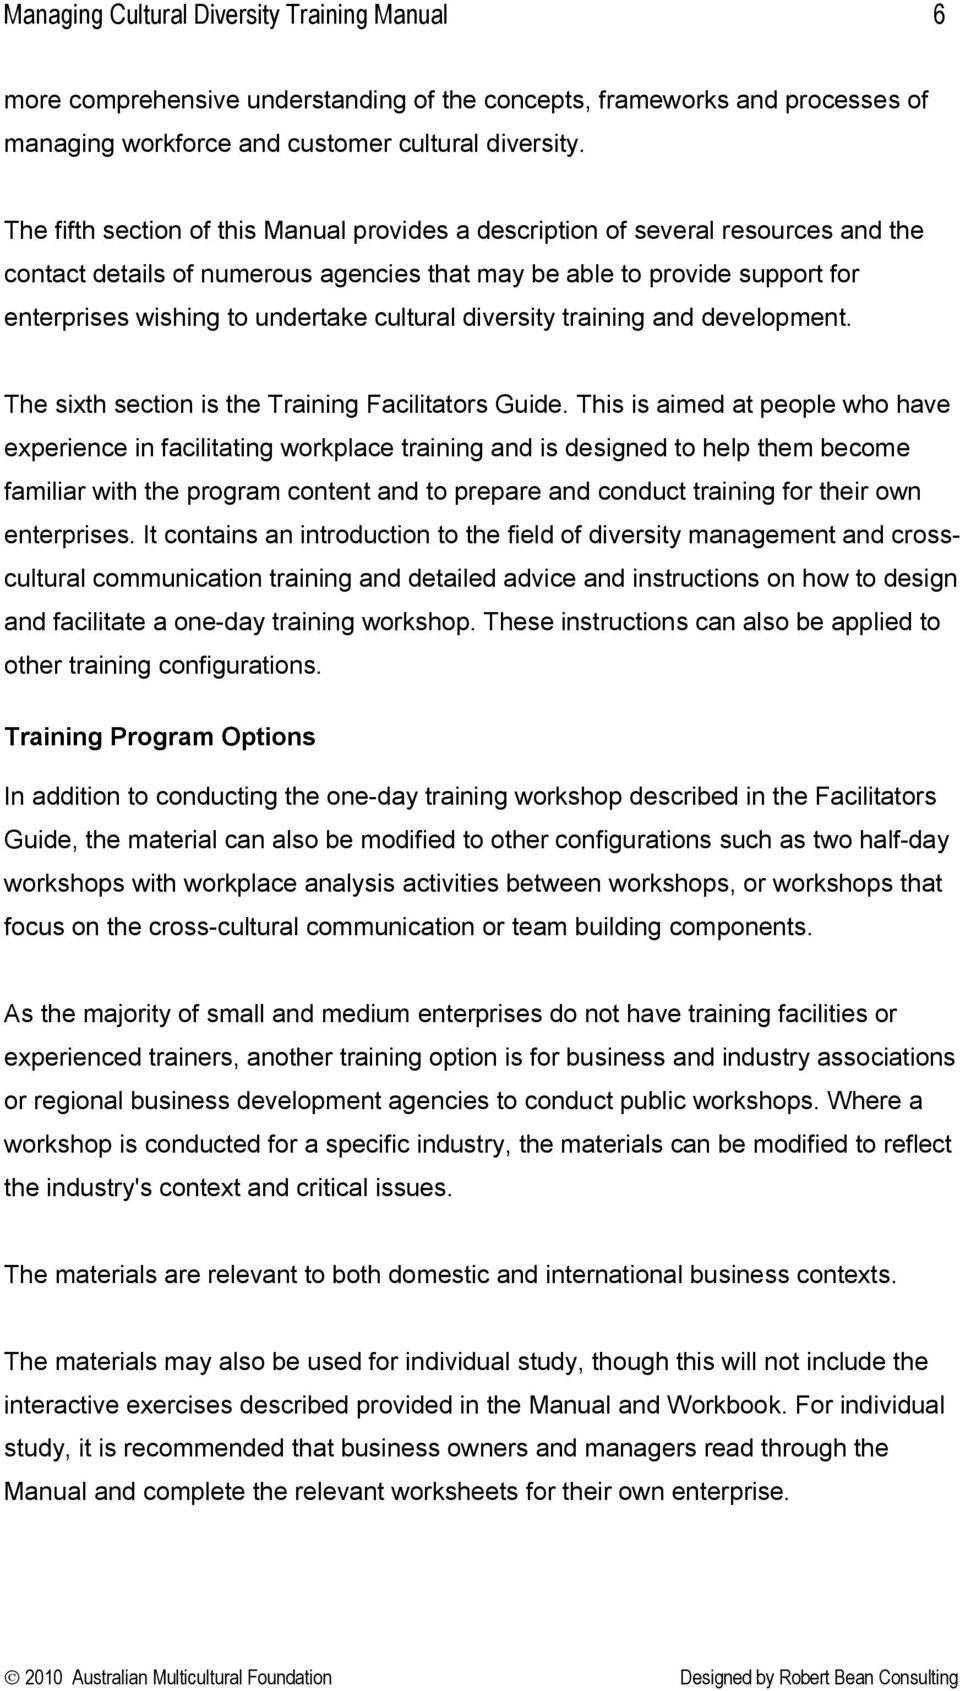 cultural diversity training and development. The sixth section is the  Training Facilitators Guide.